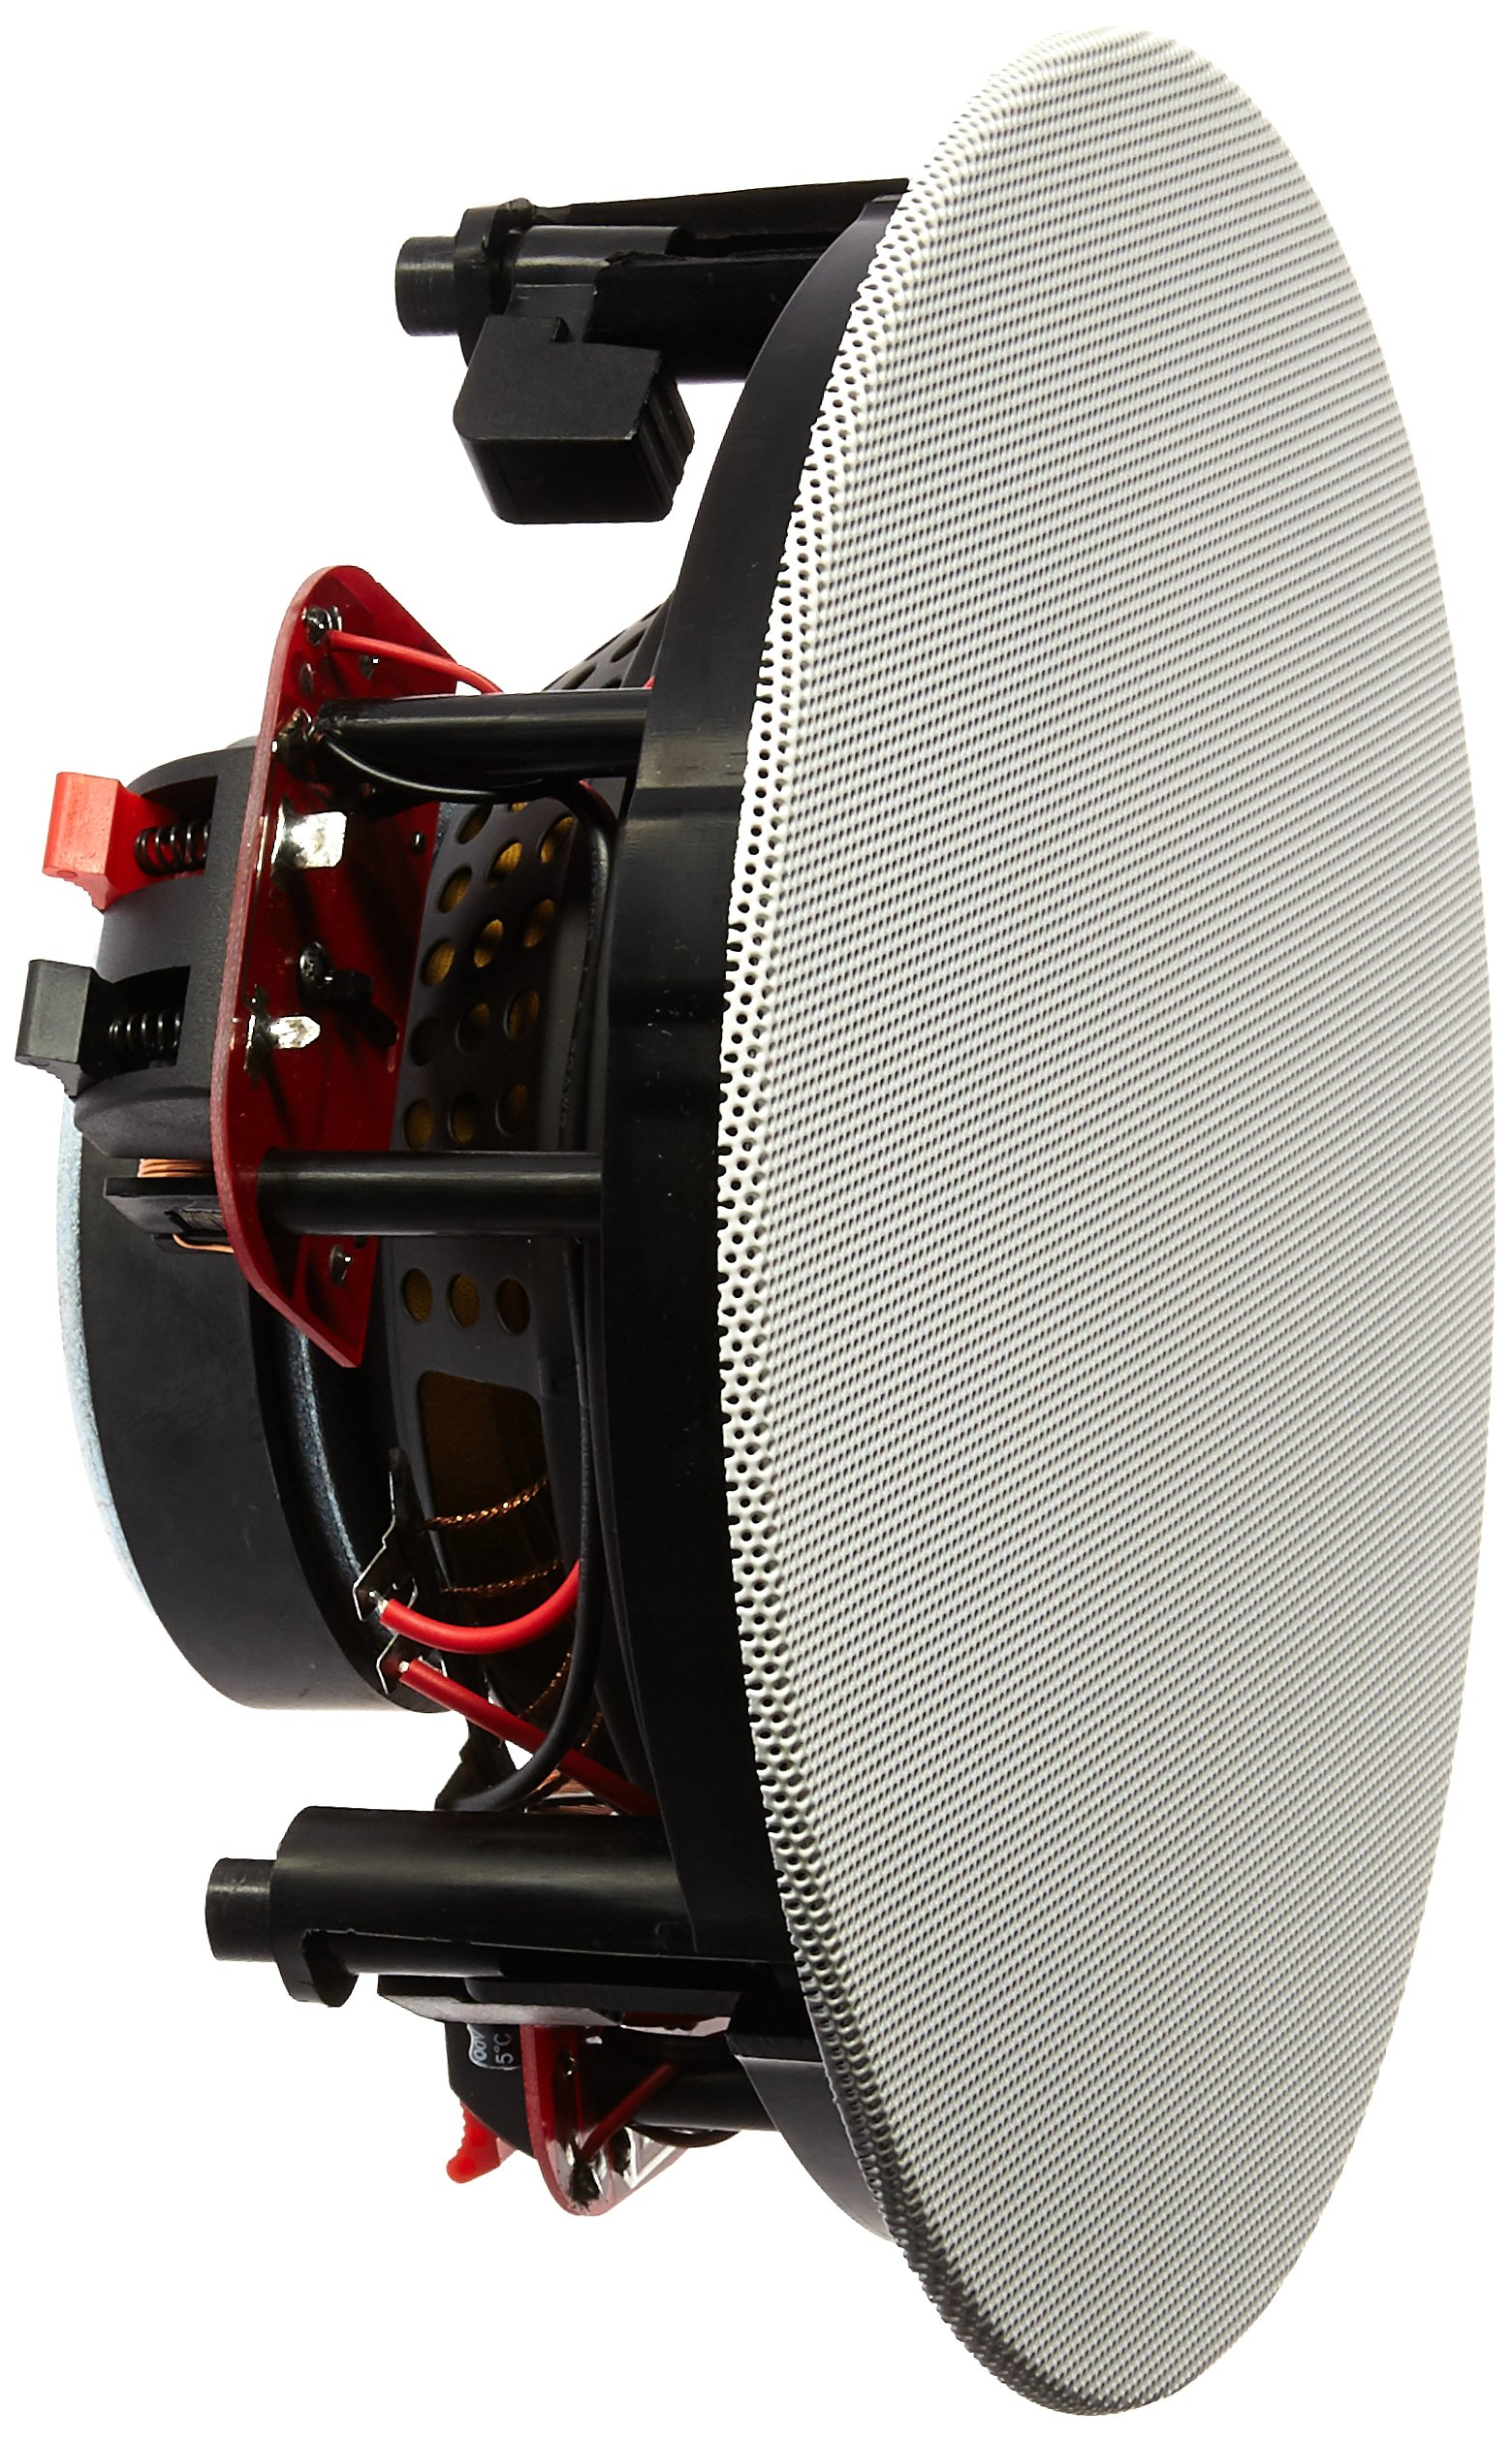 Russound RSF-610T Single Point Stereo In-Ceiling/In-Wall Speaker with 6.5-Inch Dual Voice Coil Woofer (Black)